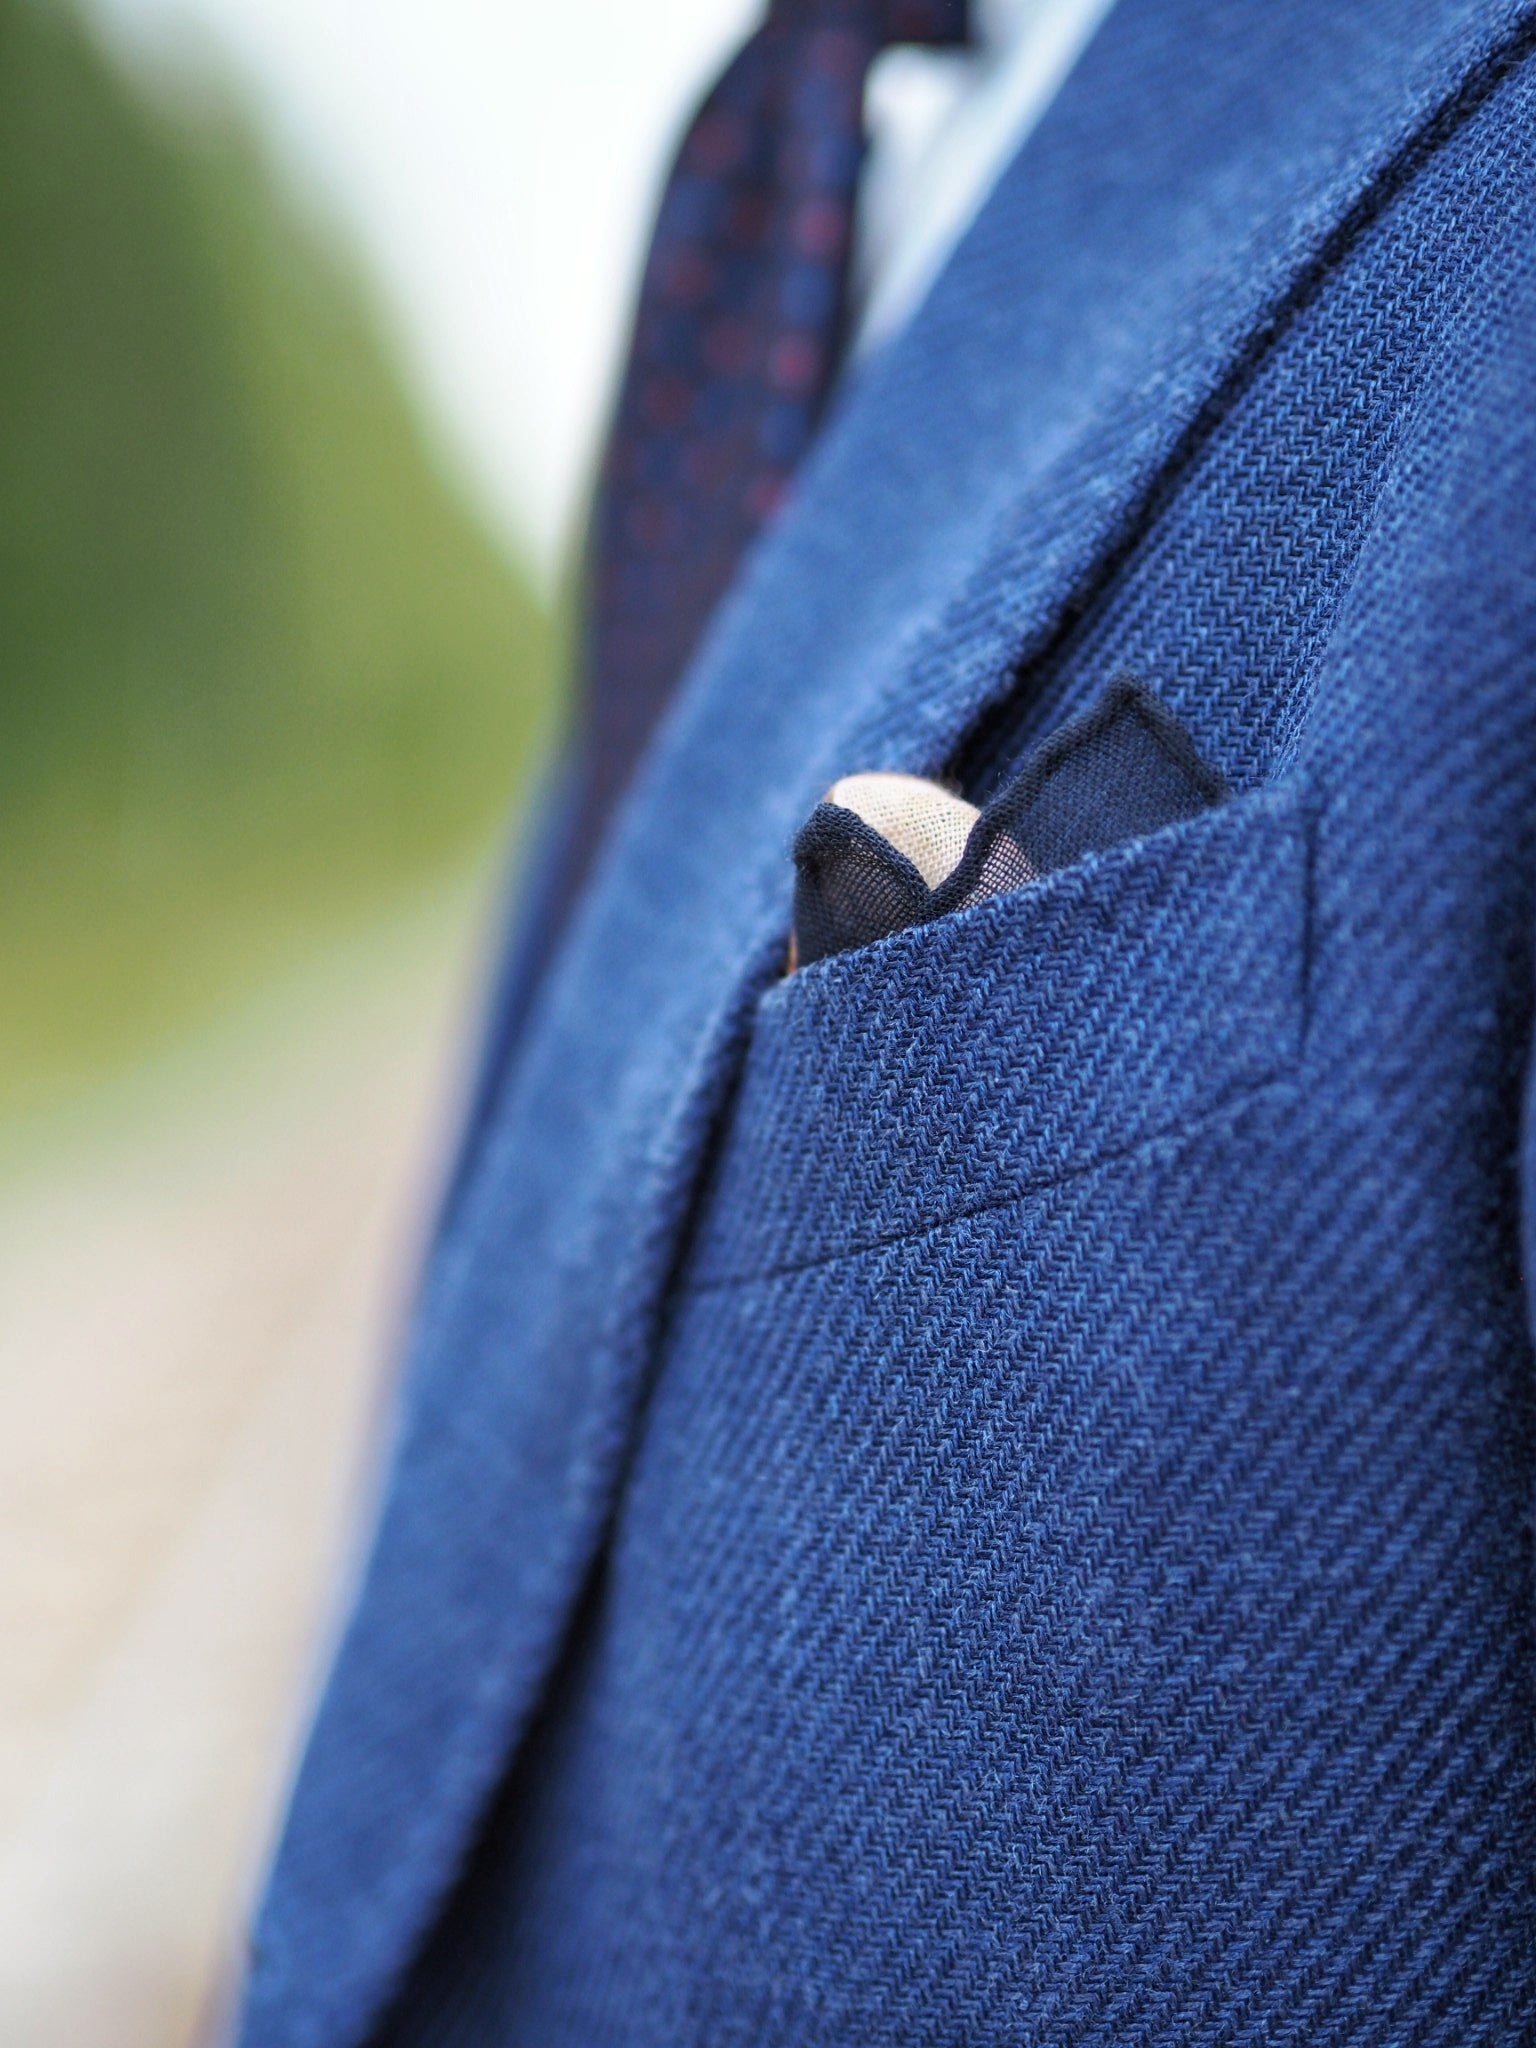 Blue suit jacket as a sport coat - suit jacket details and the herringbone pattern